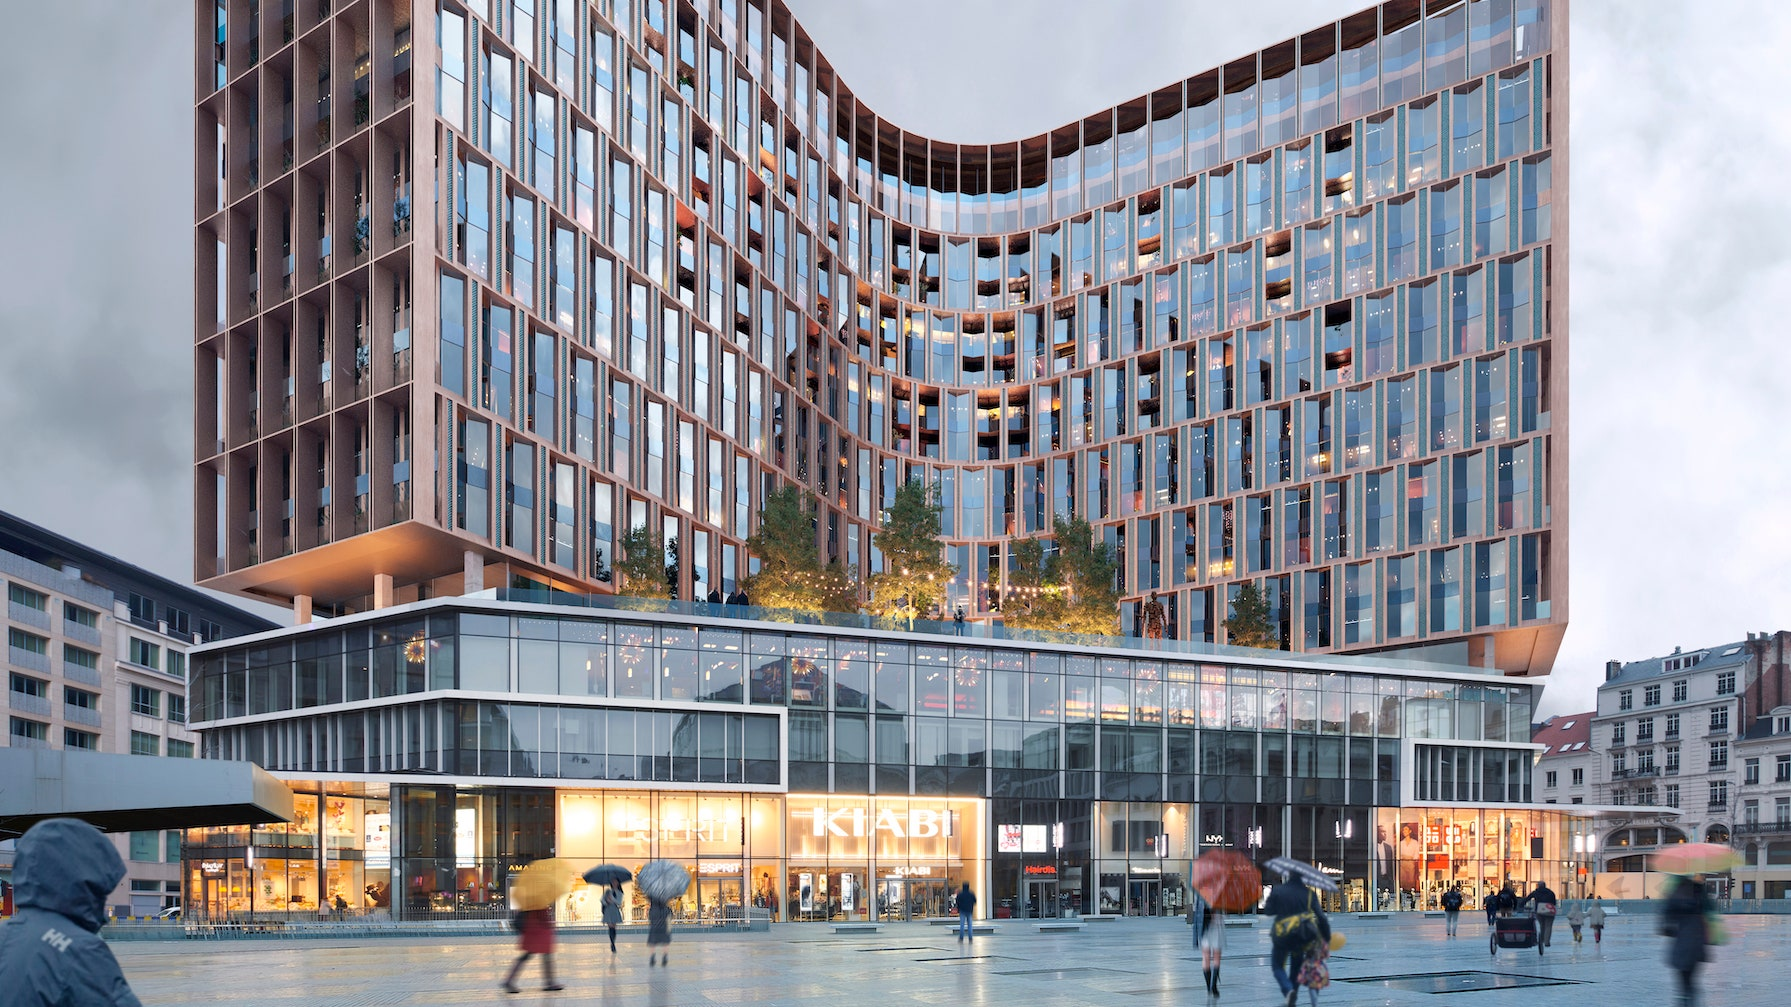 SNOHETTA SELECTED TO TRANSFORM ICONIC BRUSSELS BUILDING